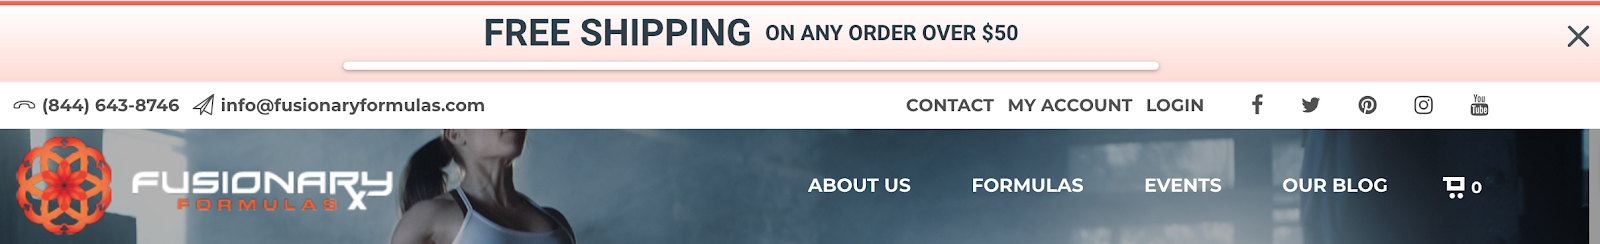 Screenshot showing Sumo free shipping bar